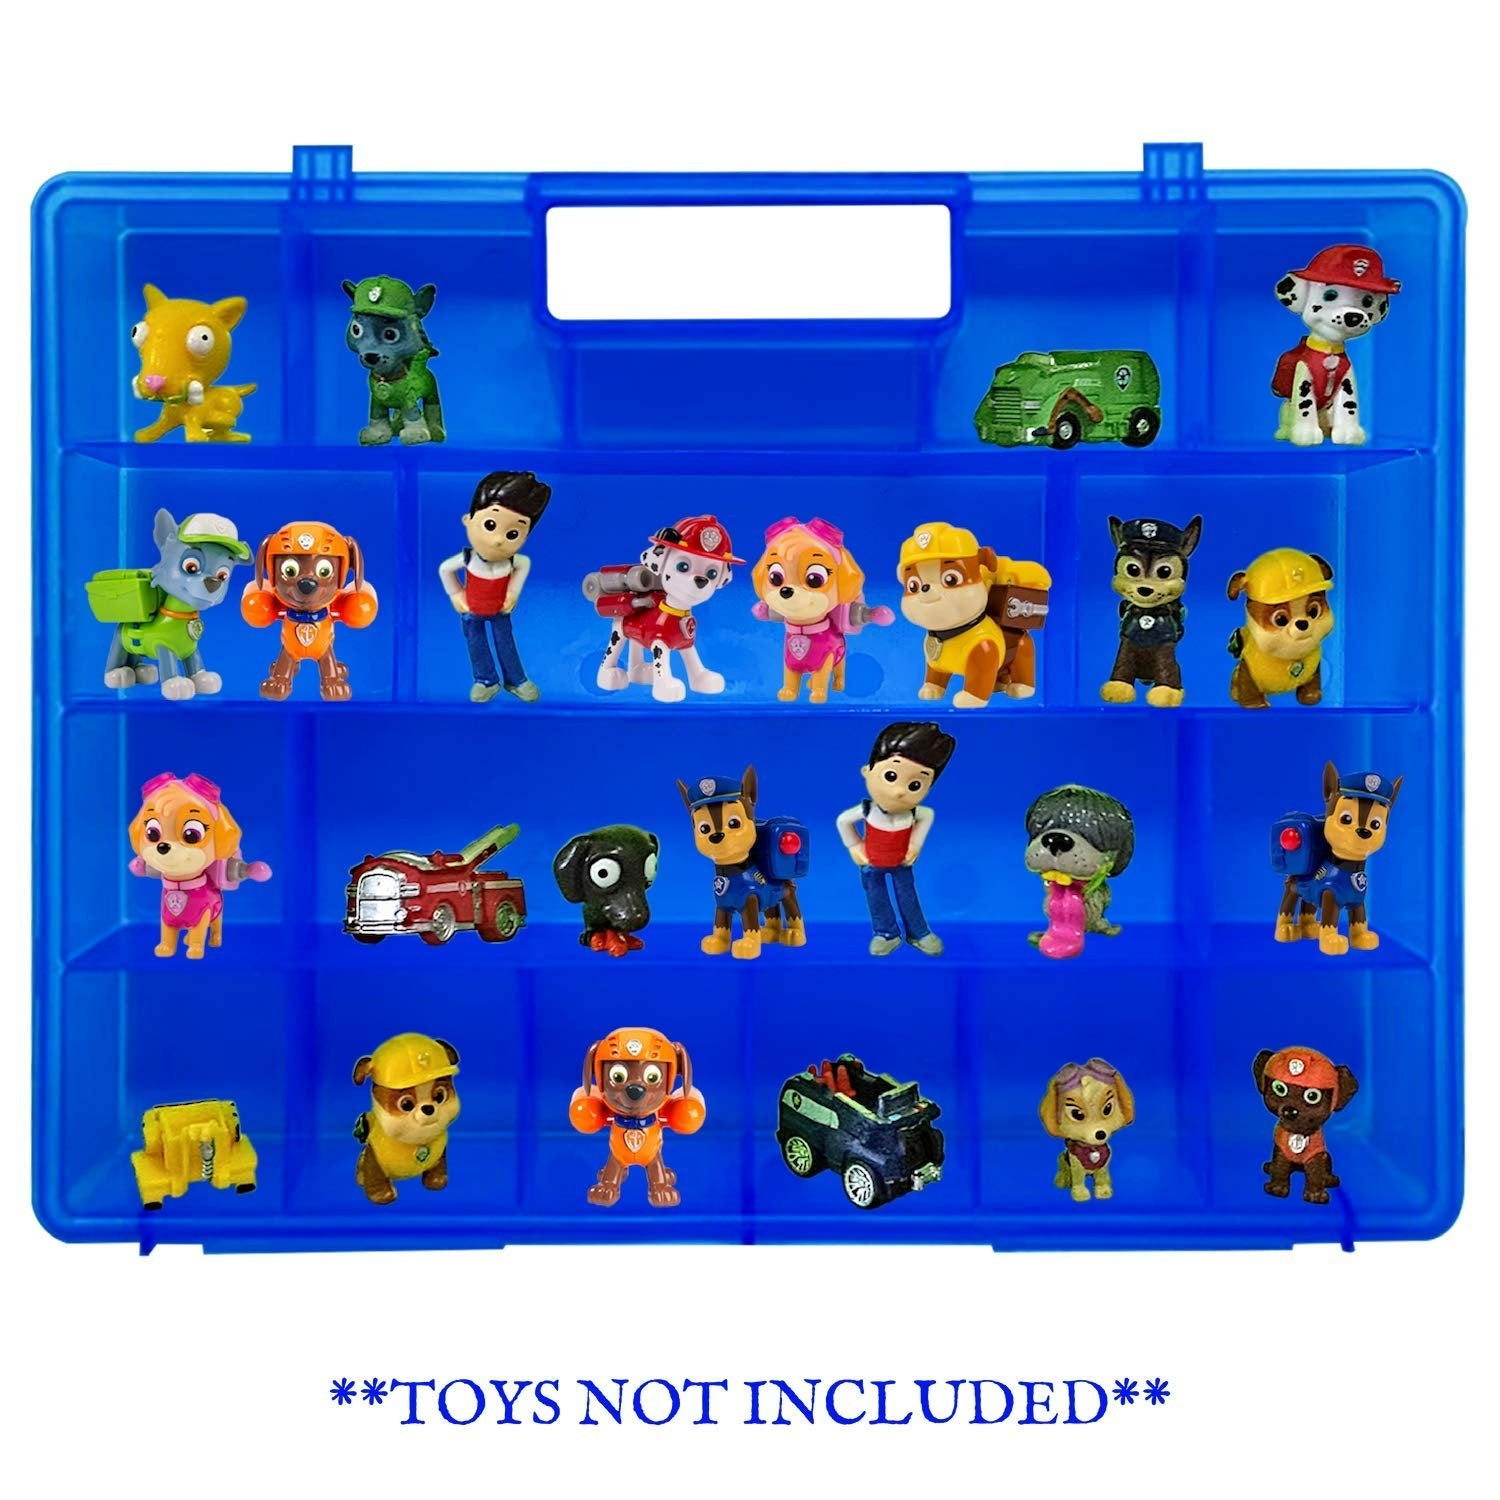 Life Made Better, Convenient Blue Advanced Design Take-Along Toy Carrier Case, Compatible with Paw Patrol Mini Figures, Will Store up to 30 Figures, Accessory Created by LMB